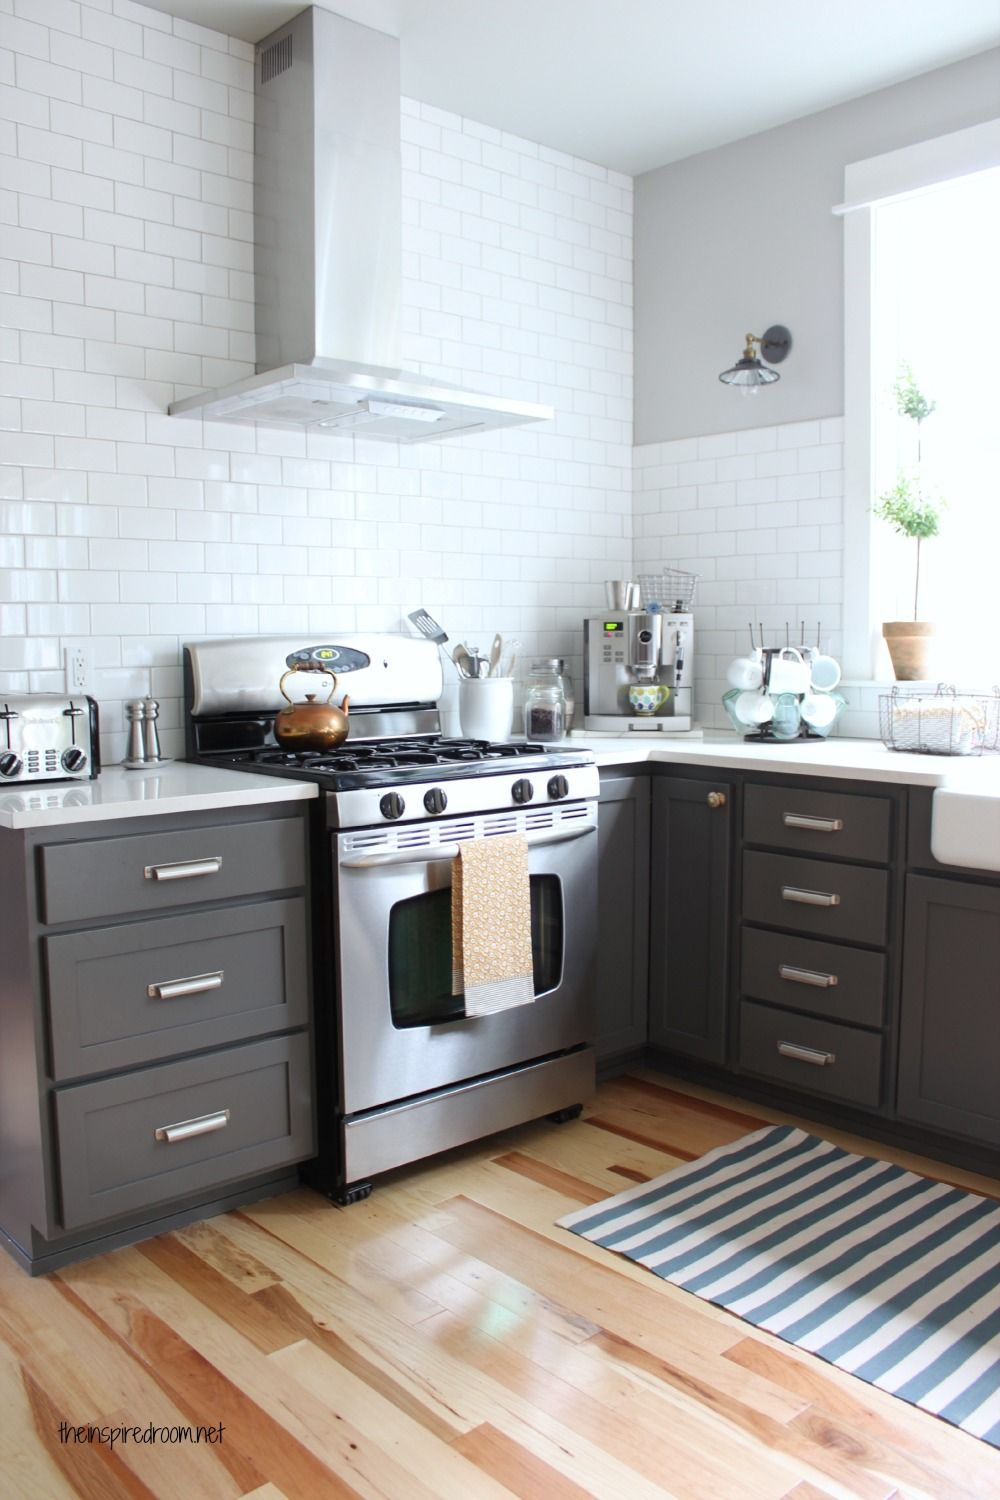 Pin By Tina E On Zoe S Favorite Interiors Home Kitchens Kitchen Design Painting Kitchen Cabinets